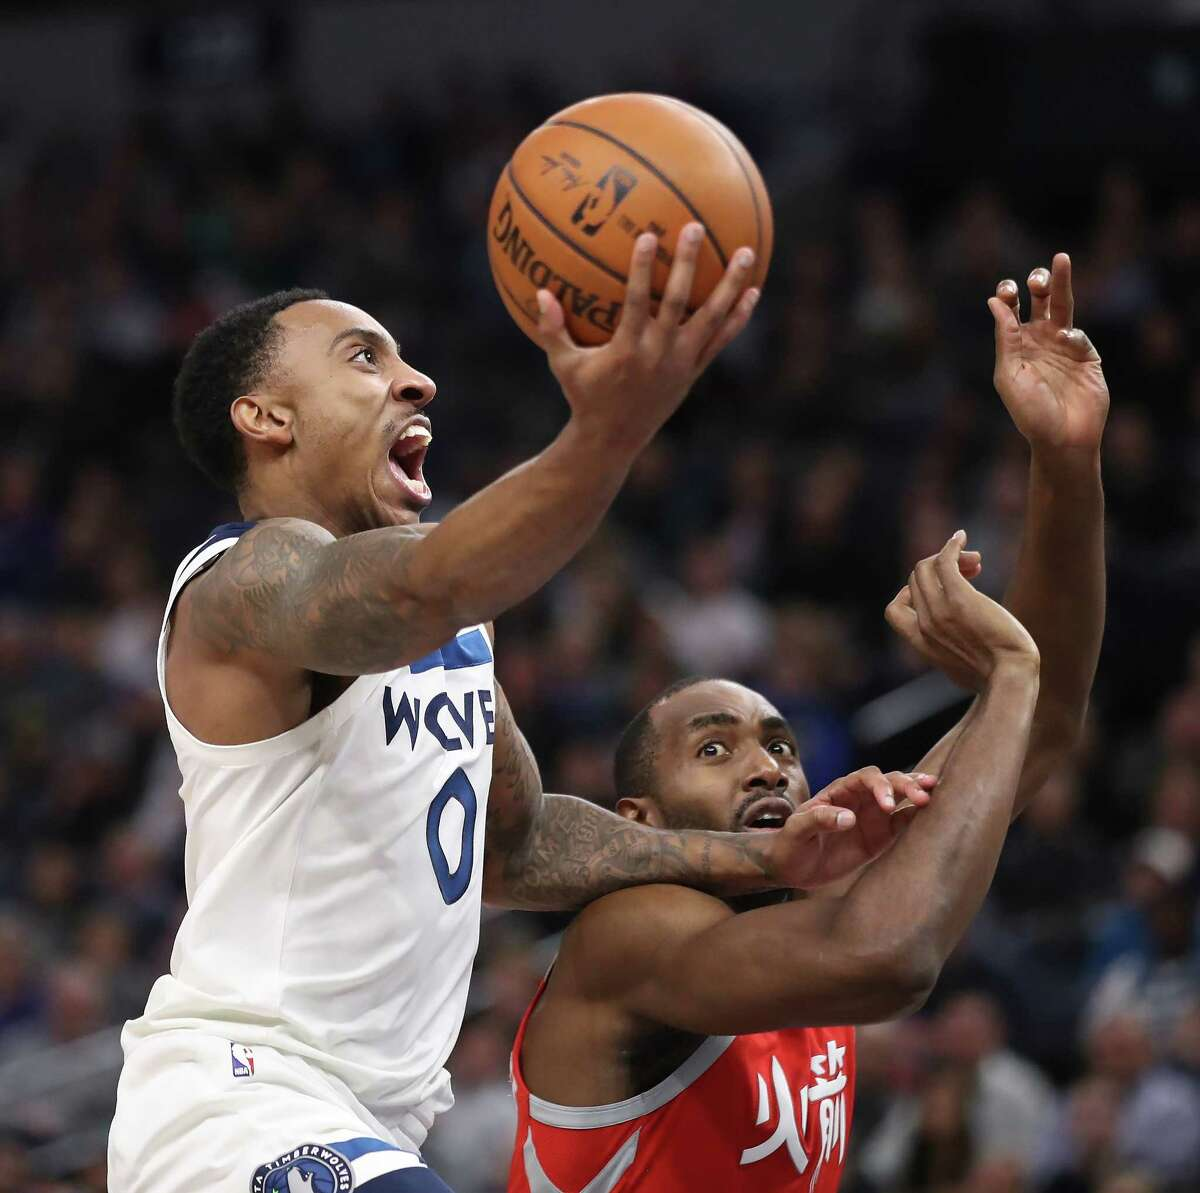 The Minnesota Timberwolves' Jeff Teague (0) scores over the Houston Rockets' Luc Mbah a Moute in the first half at Target Center in Minneapolis on Tuesday, Feb. 13, 2018.